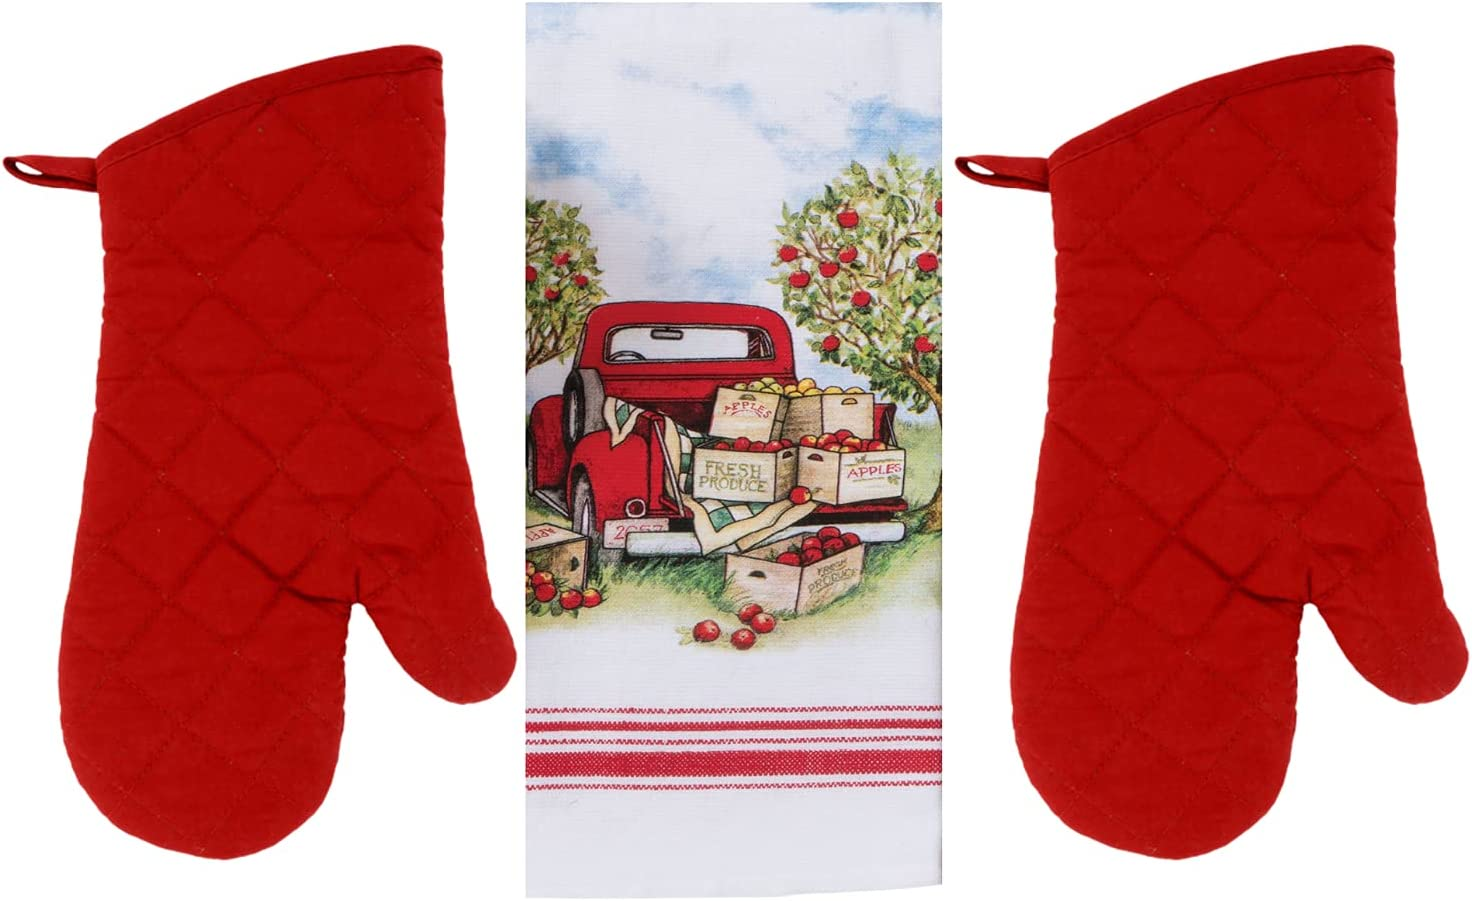 Just4You Vintage Farm Truck and Apples Kitchen Towel Set, Red and White - 1 Apple Picking Dish Towel with Red Farm Truck and Apple Produce Boxes - 2 Red Oven Mitts - Country Rustic Farmhouse Theme